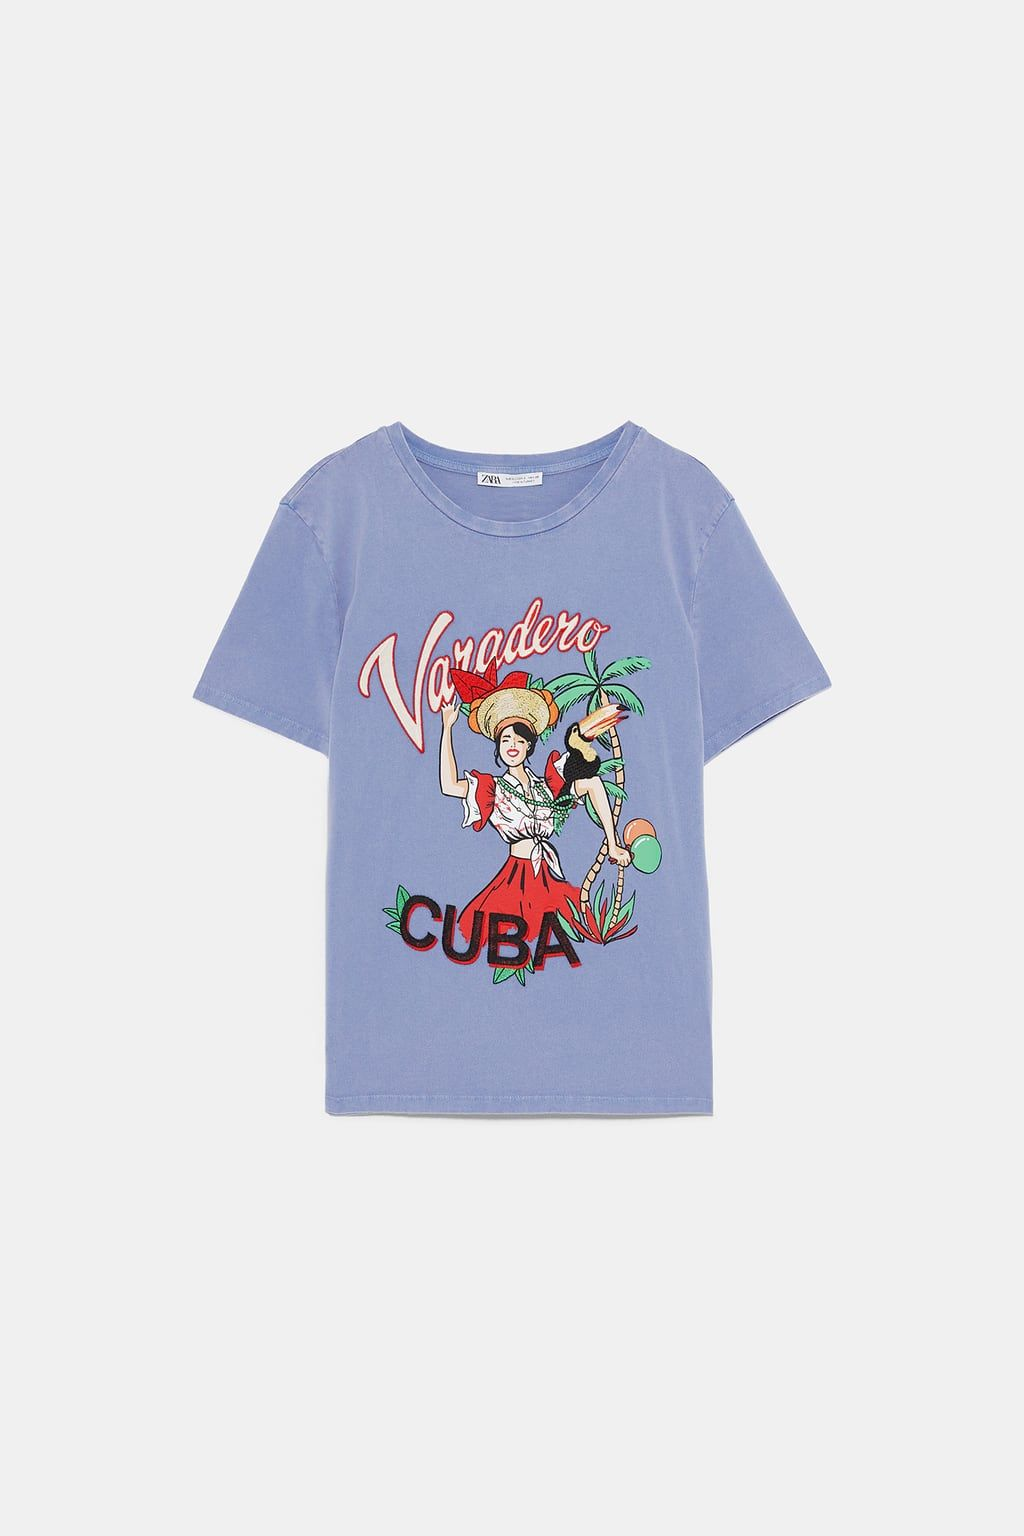 5c69bb5f89 Embroidered faded-effect t-shirt in 2019 | Zara | Shirts, T shirt ...